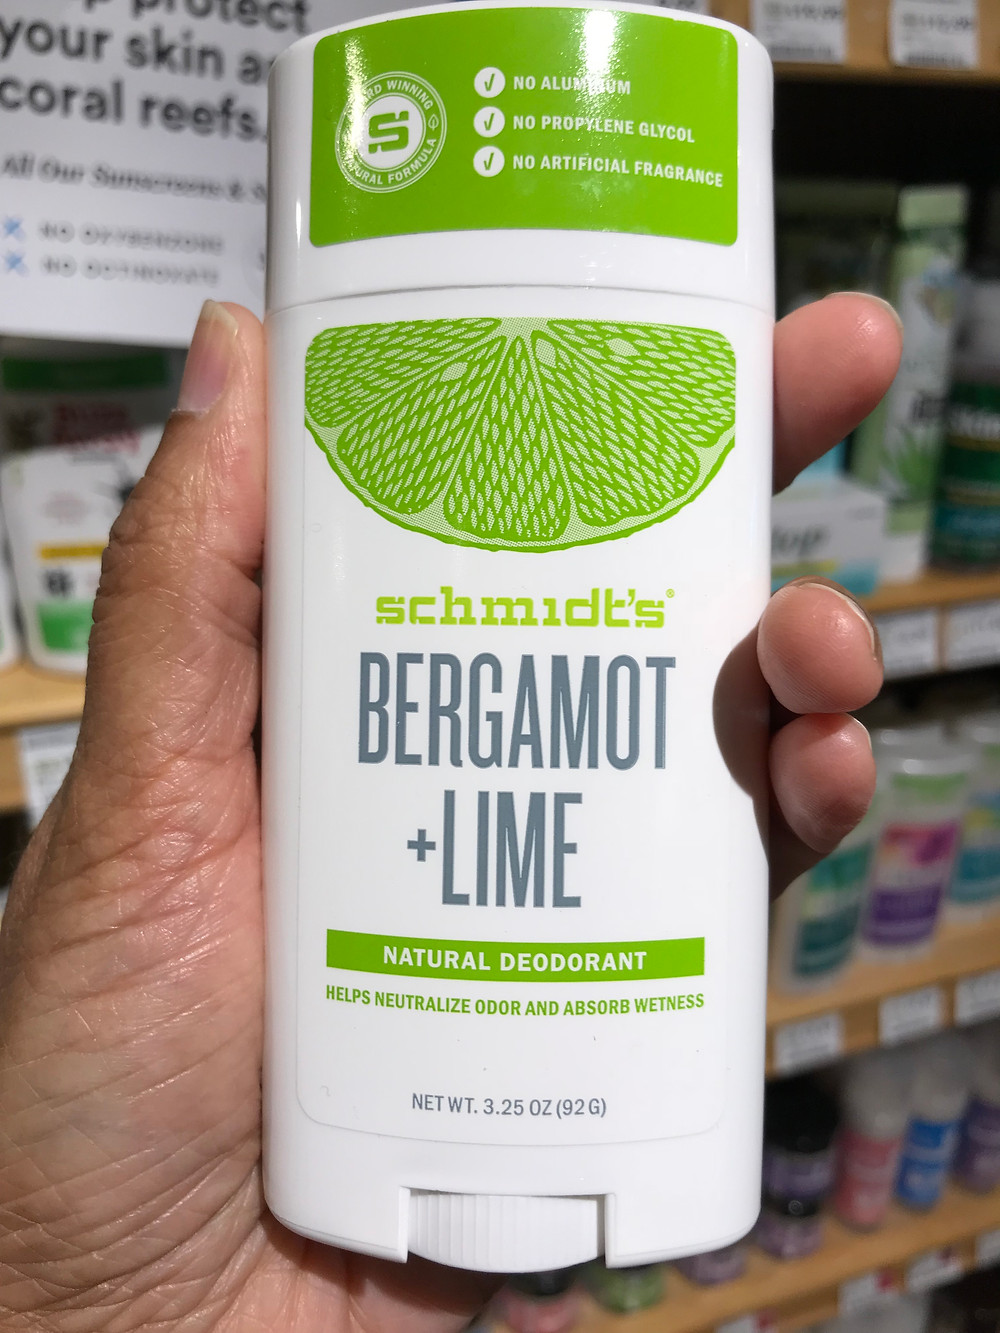 Schmidts bergamot lime deodorant may cause allergic skin reactions in the underarms